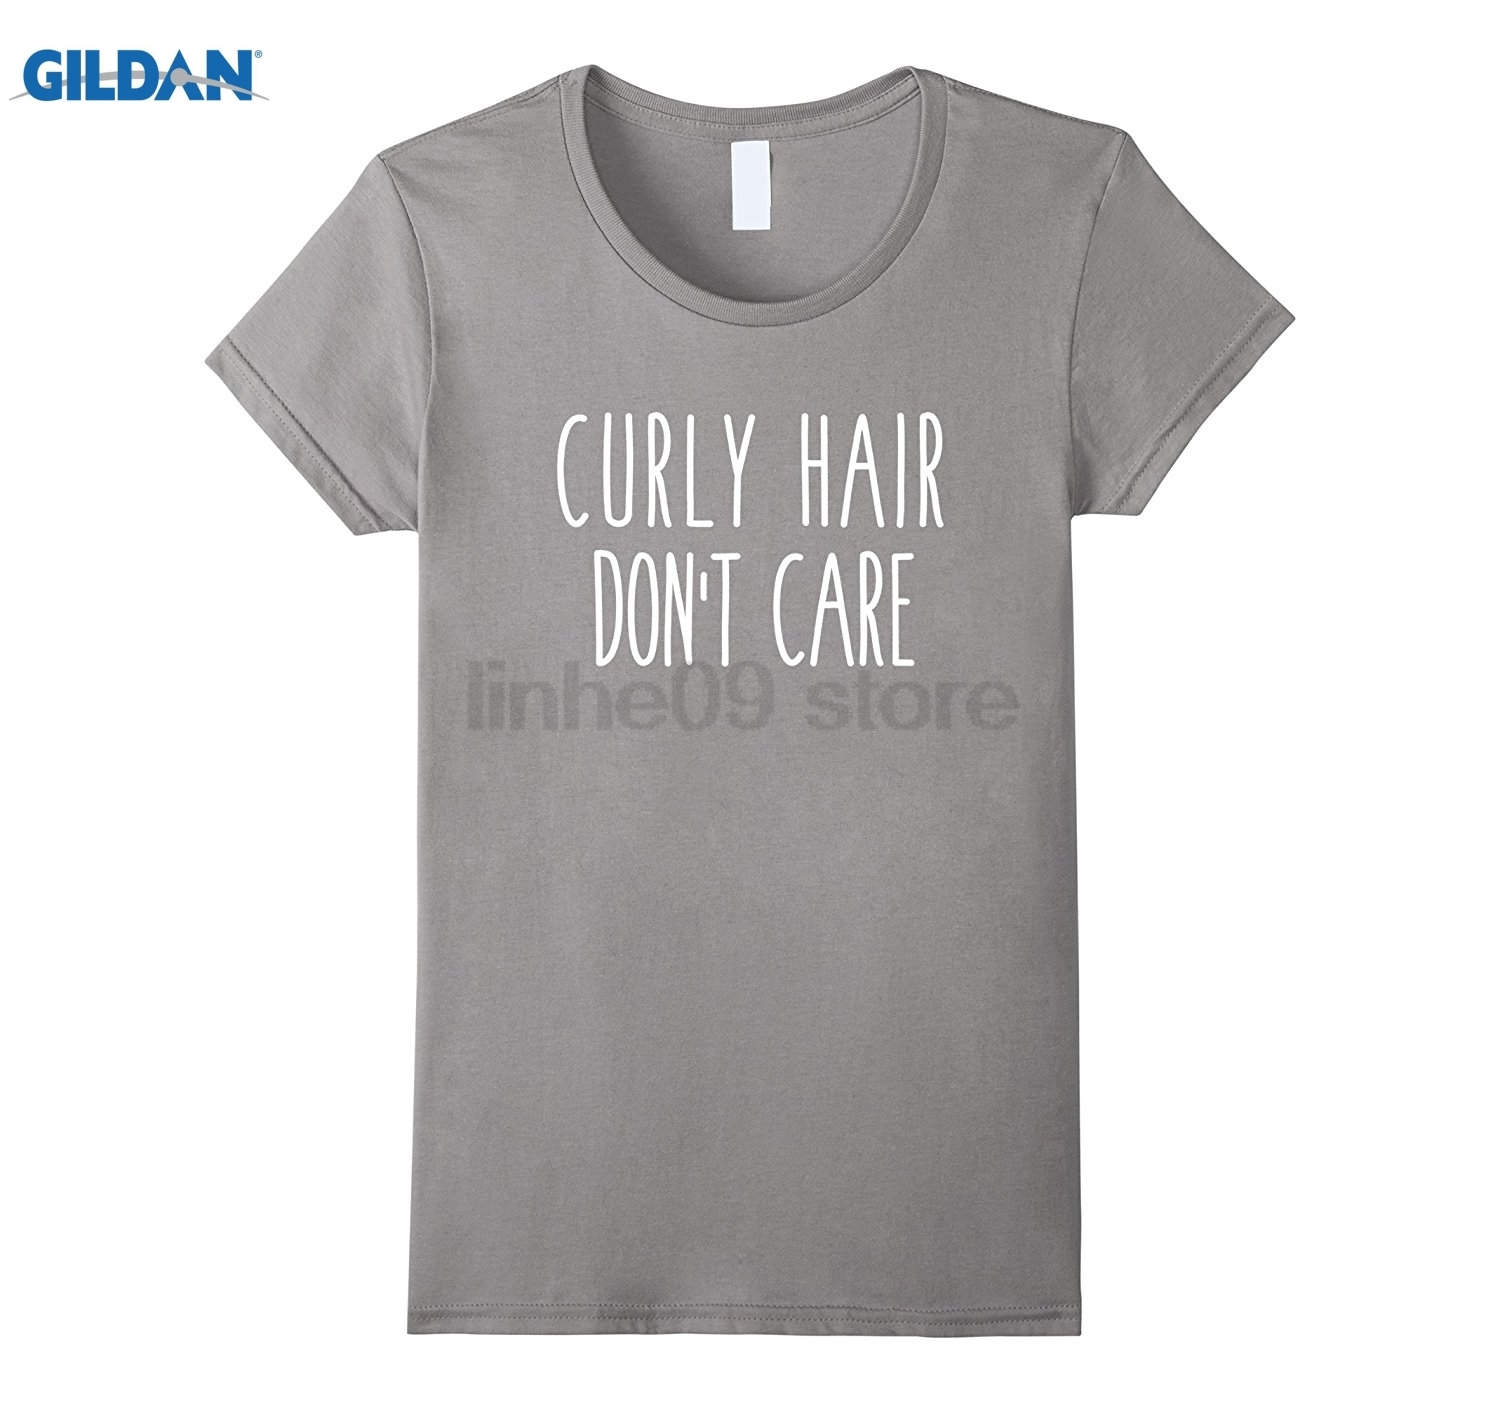 GILDAN Curly Hair Dont Care Funny Humor Saying Tee Womens T-shirt